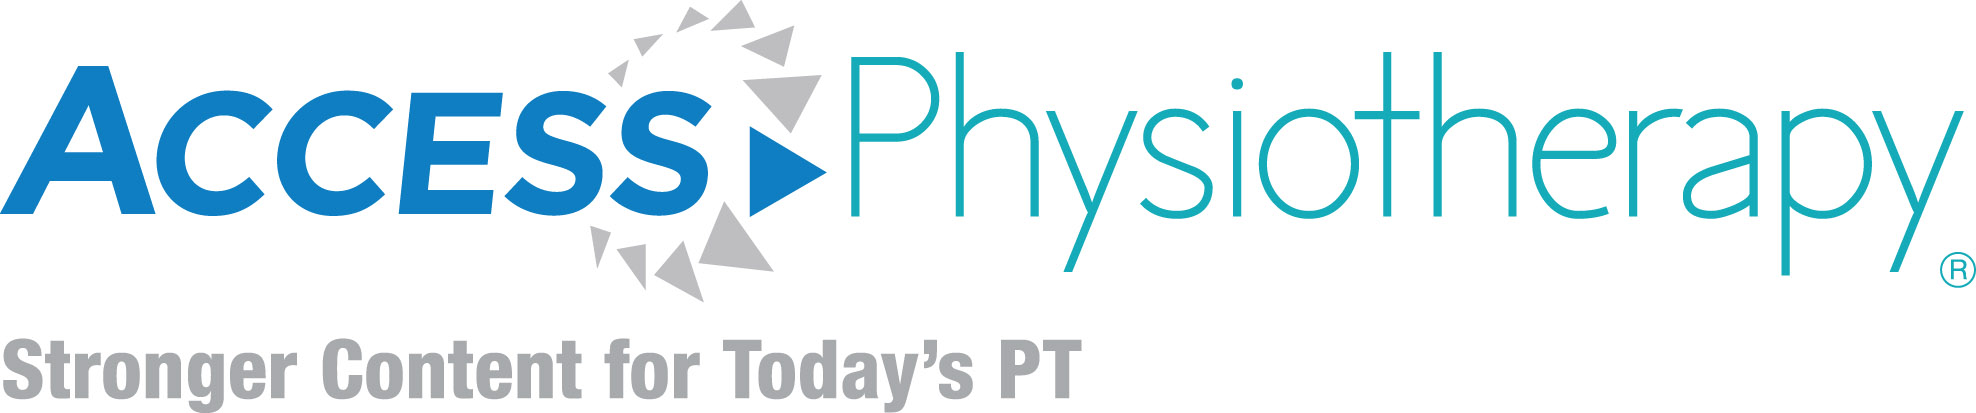 Access Physiotherapy logo